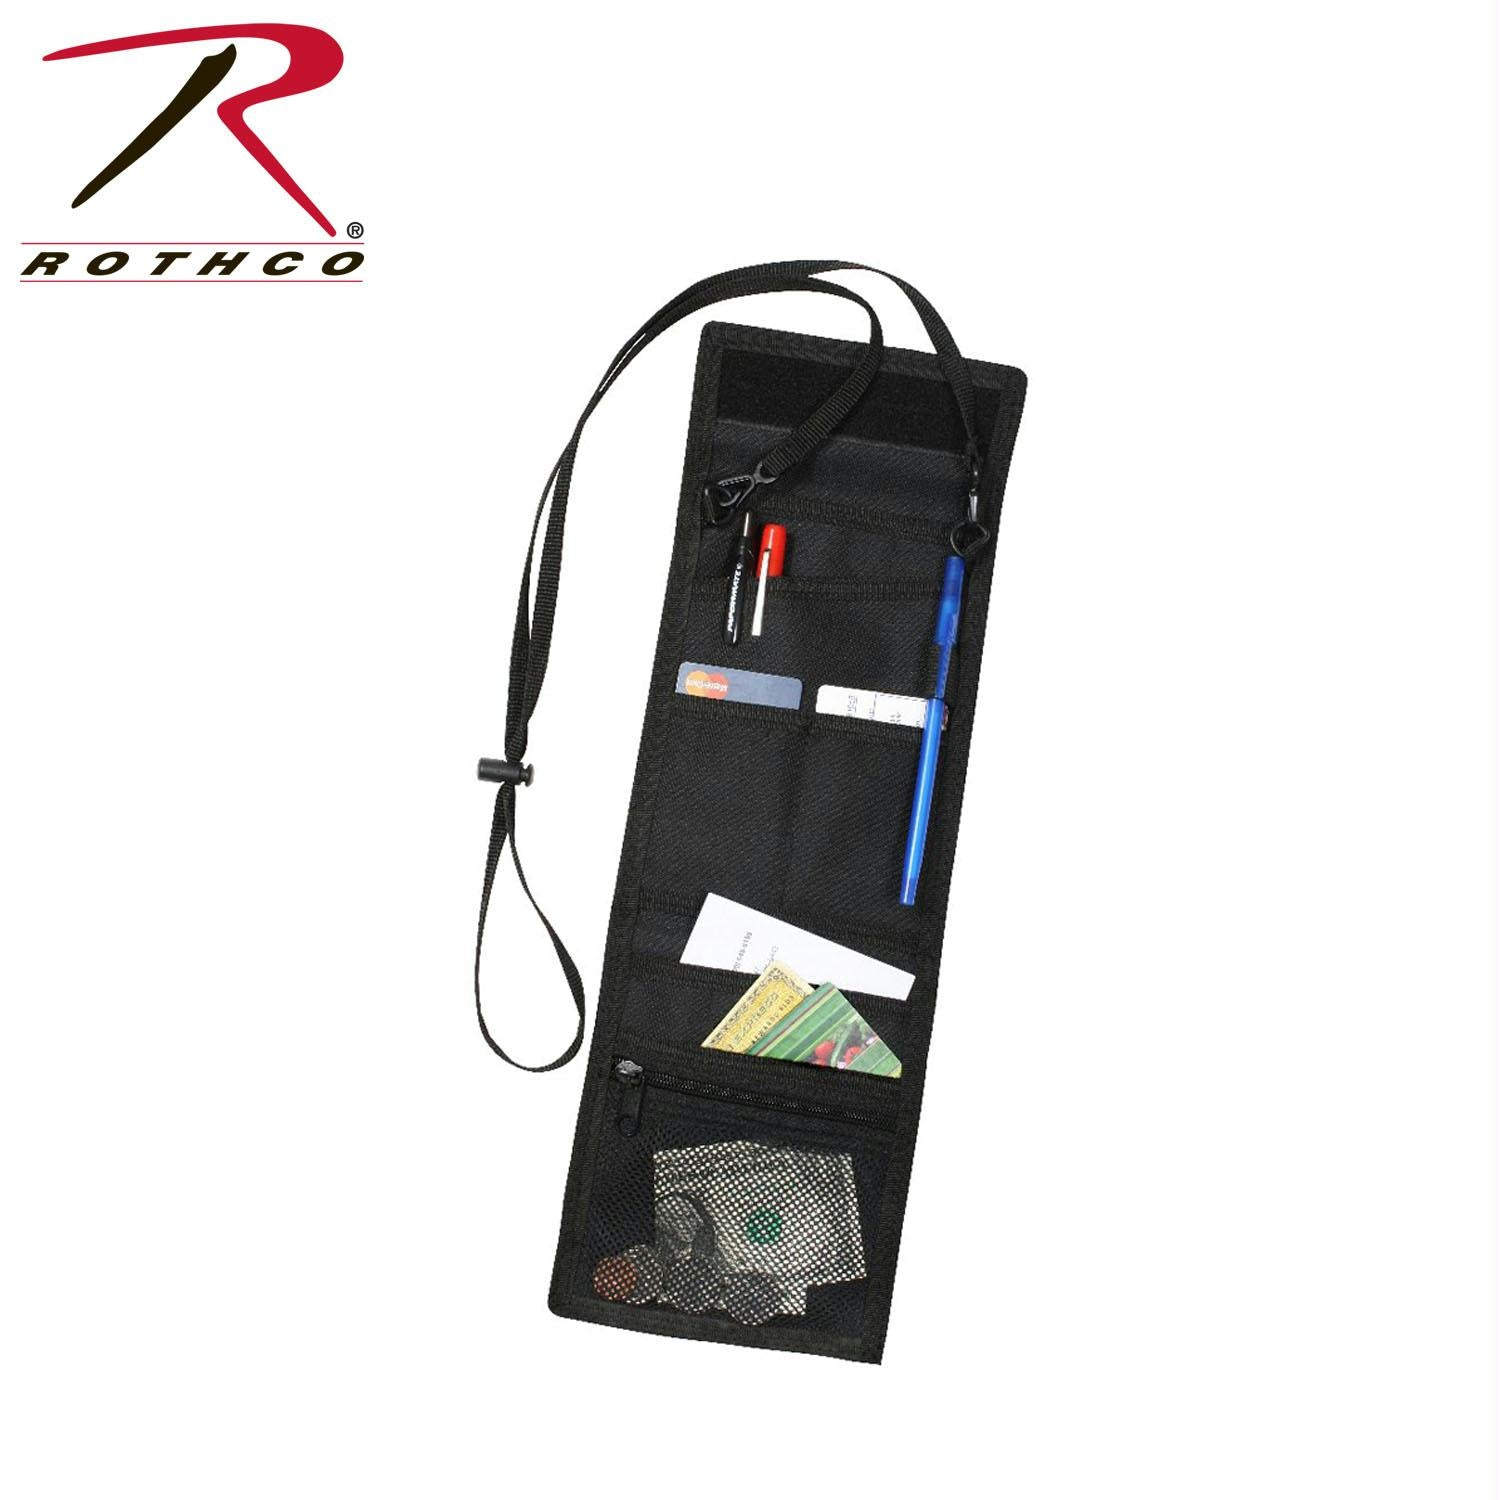 Rothco Deluxe ID Holder - Black